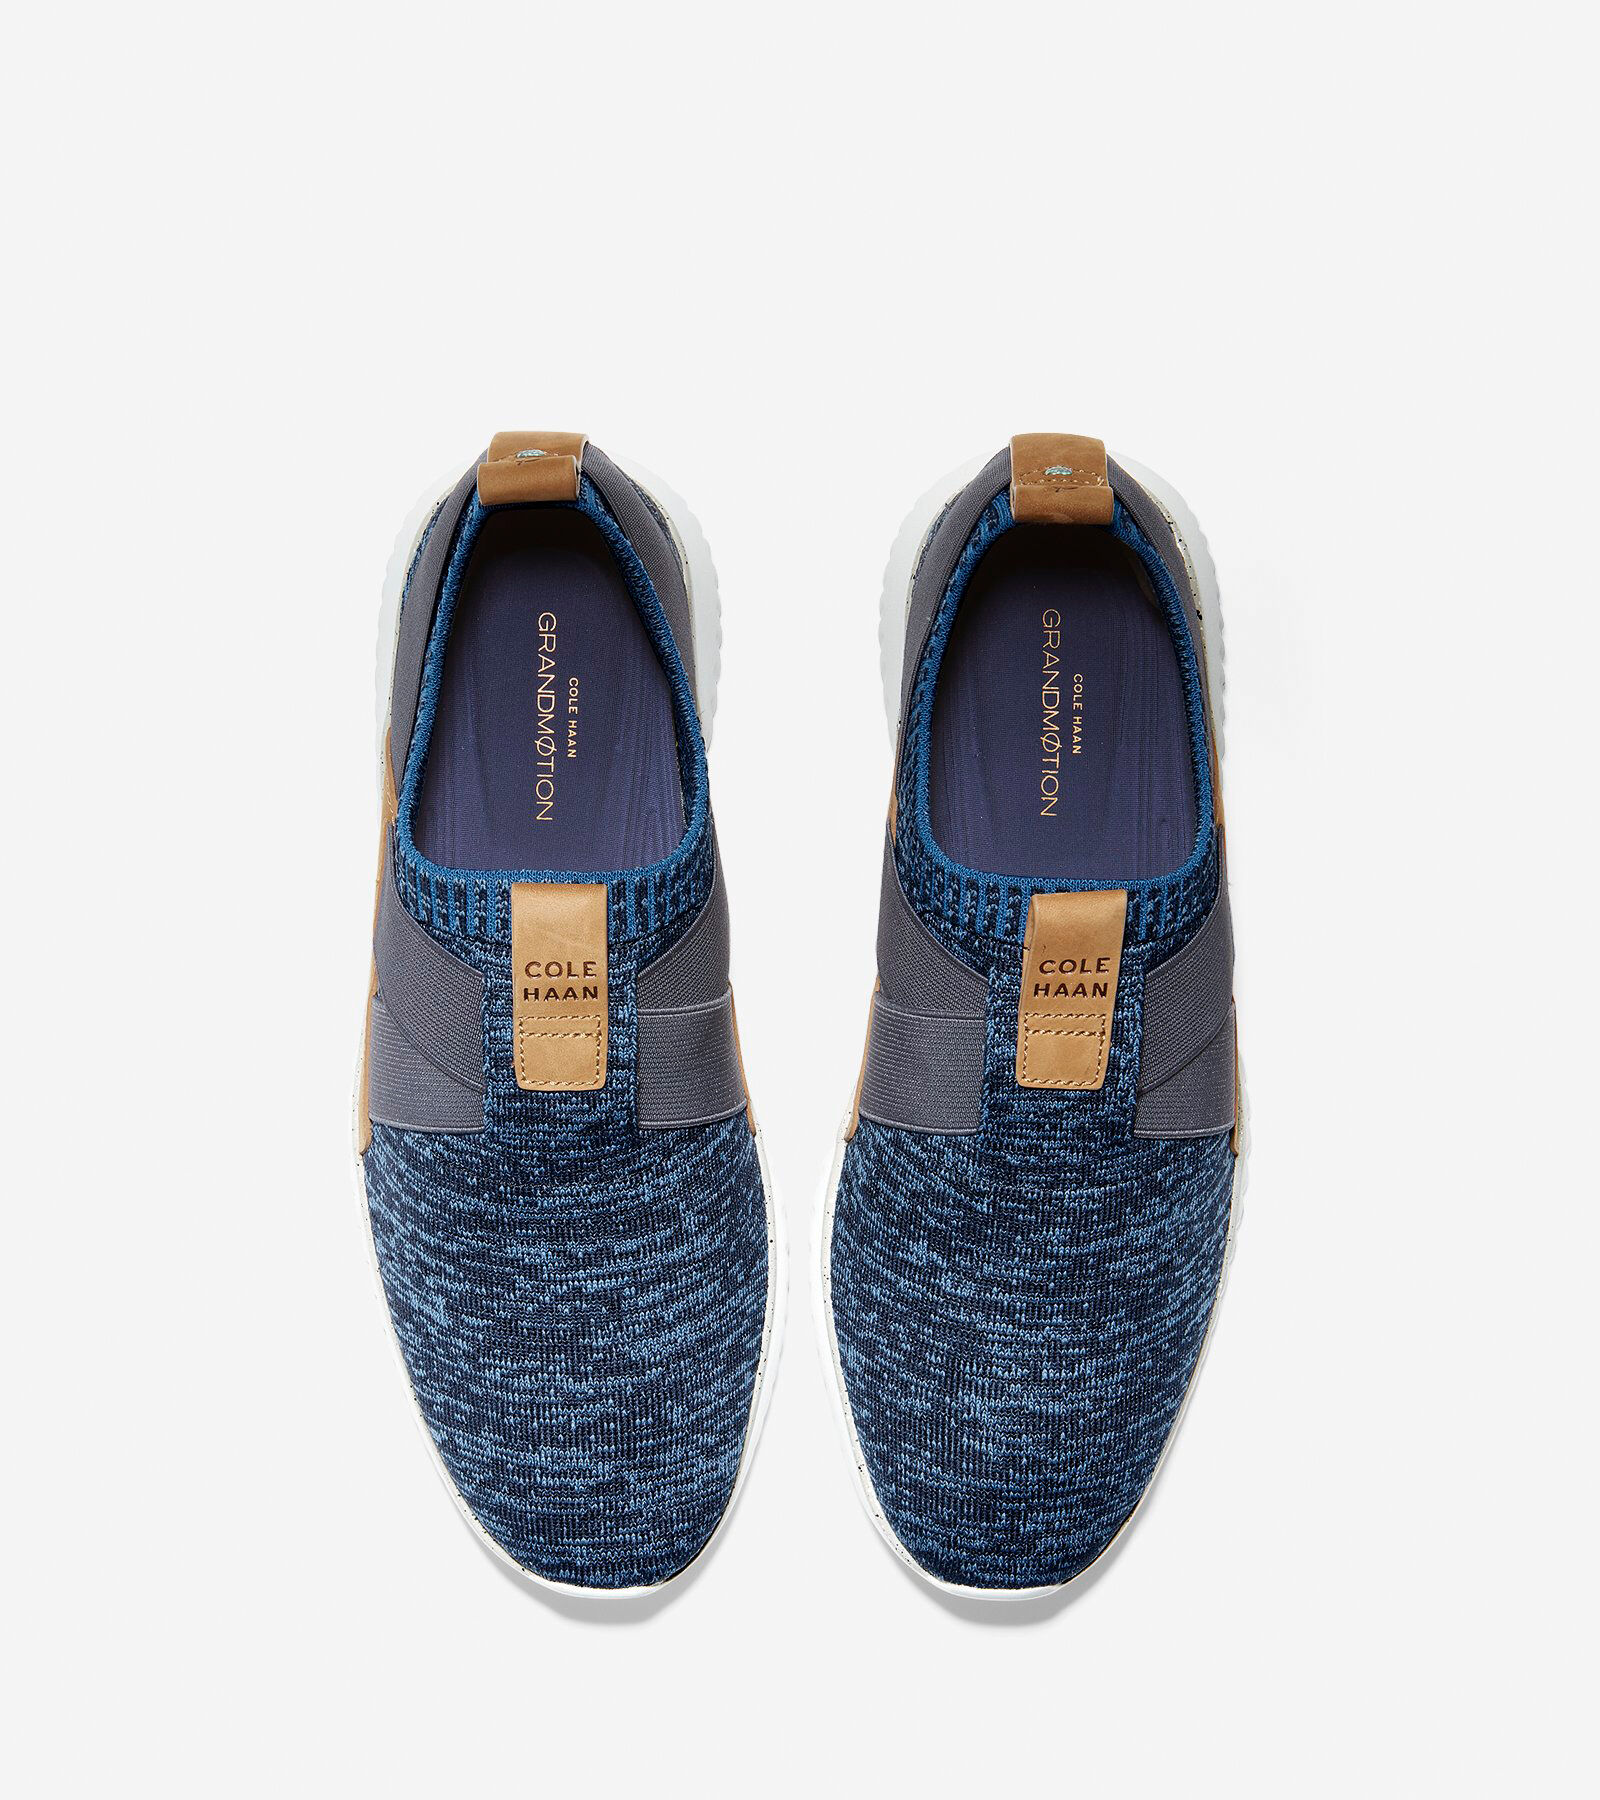 GrandMøtion Slip-On Sneaker with Stitchlite™ discount real free shipping 2014 2014 newest for sale I5fMT2